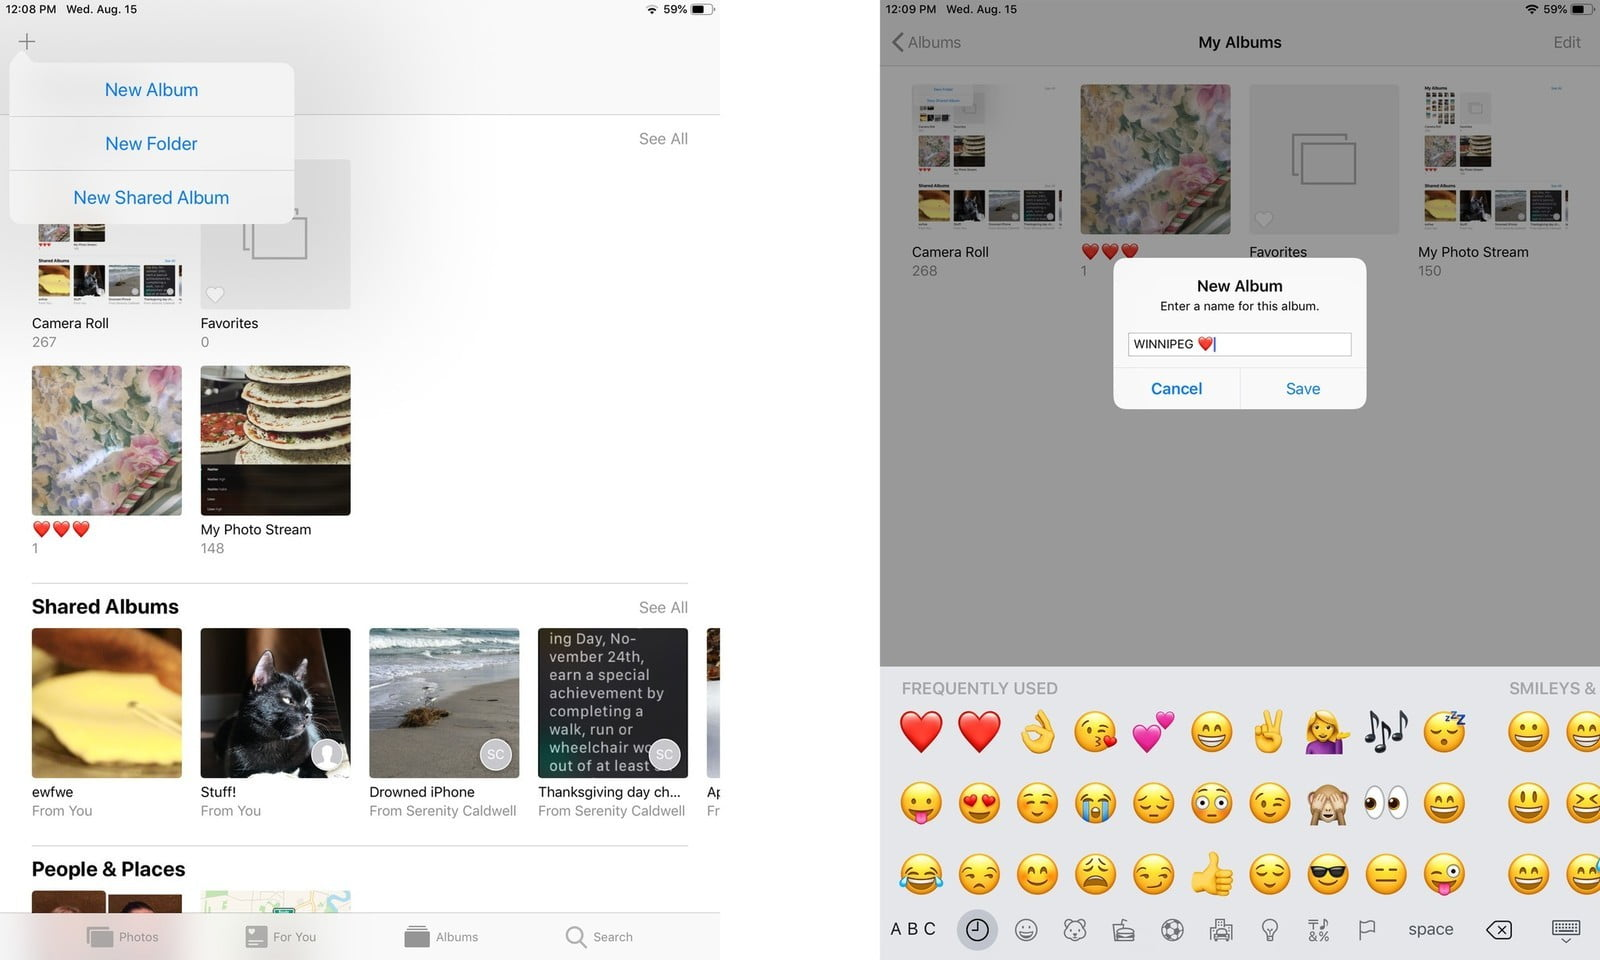 How to Unsubscribe from an iCloud Photo Gallery